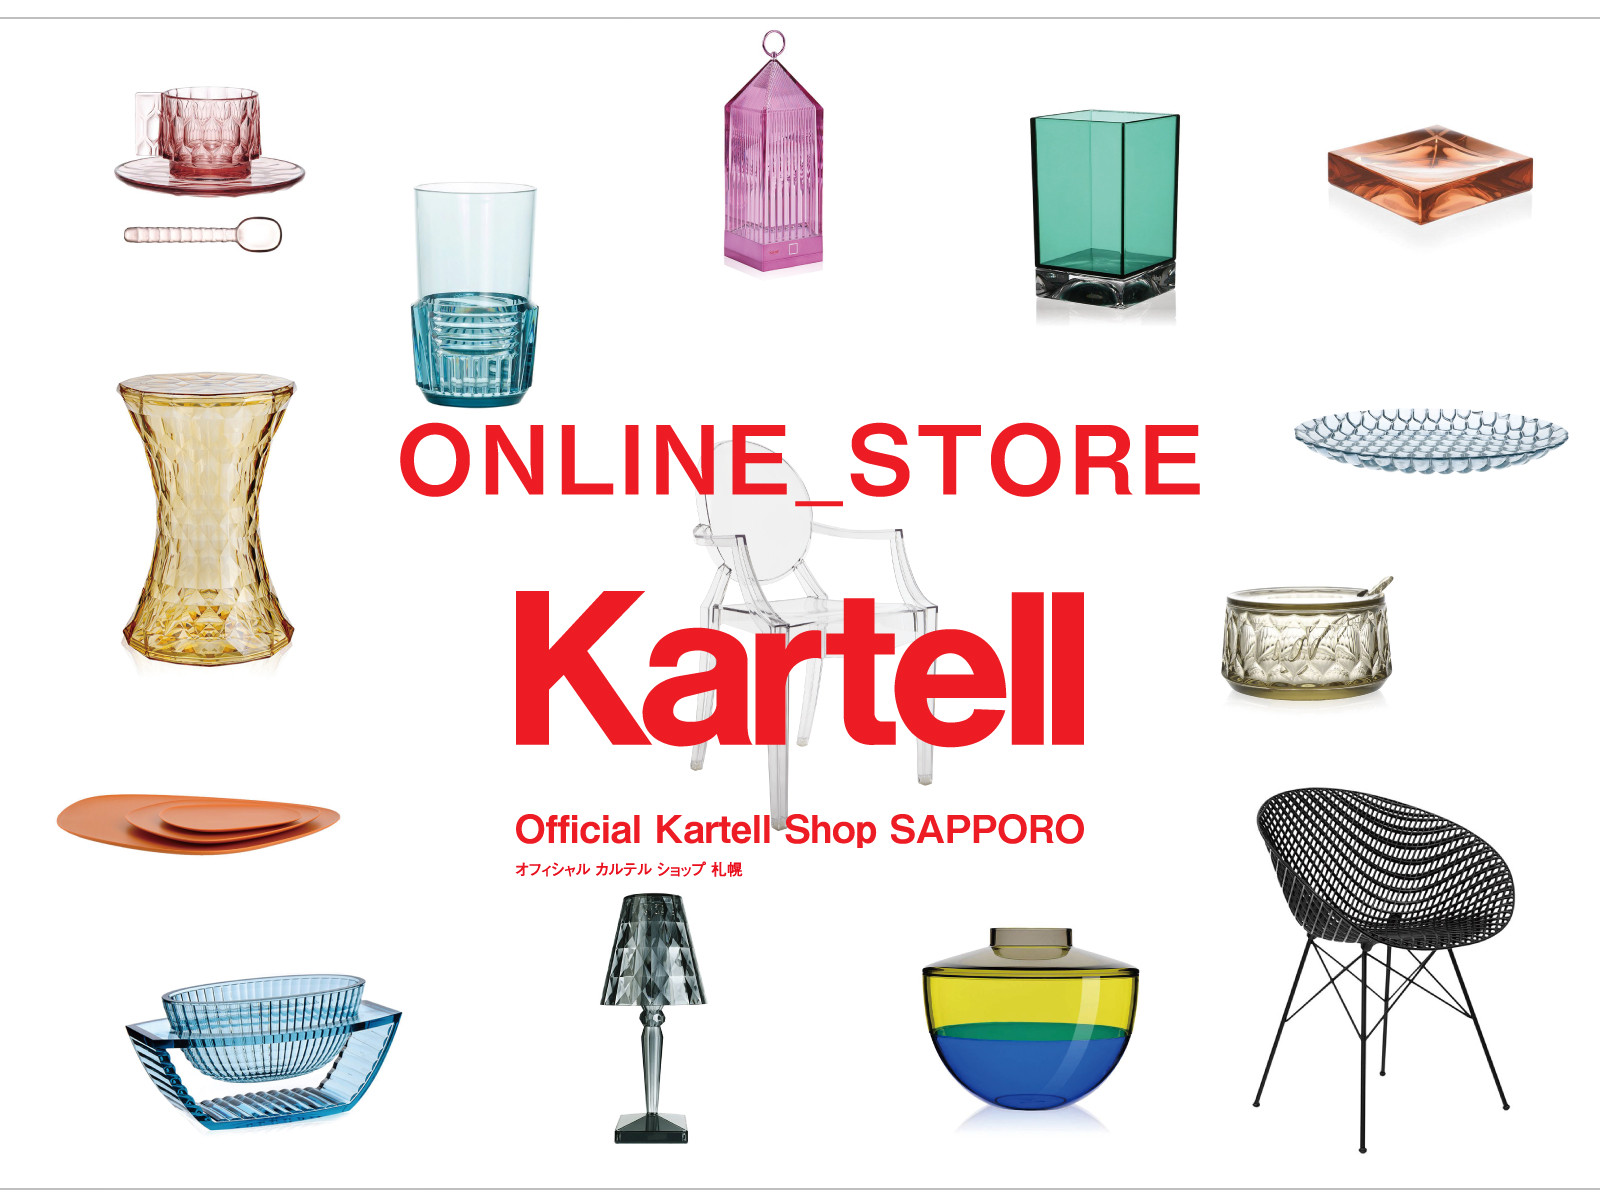 Official Kartell Shop 札幌